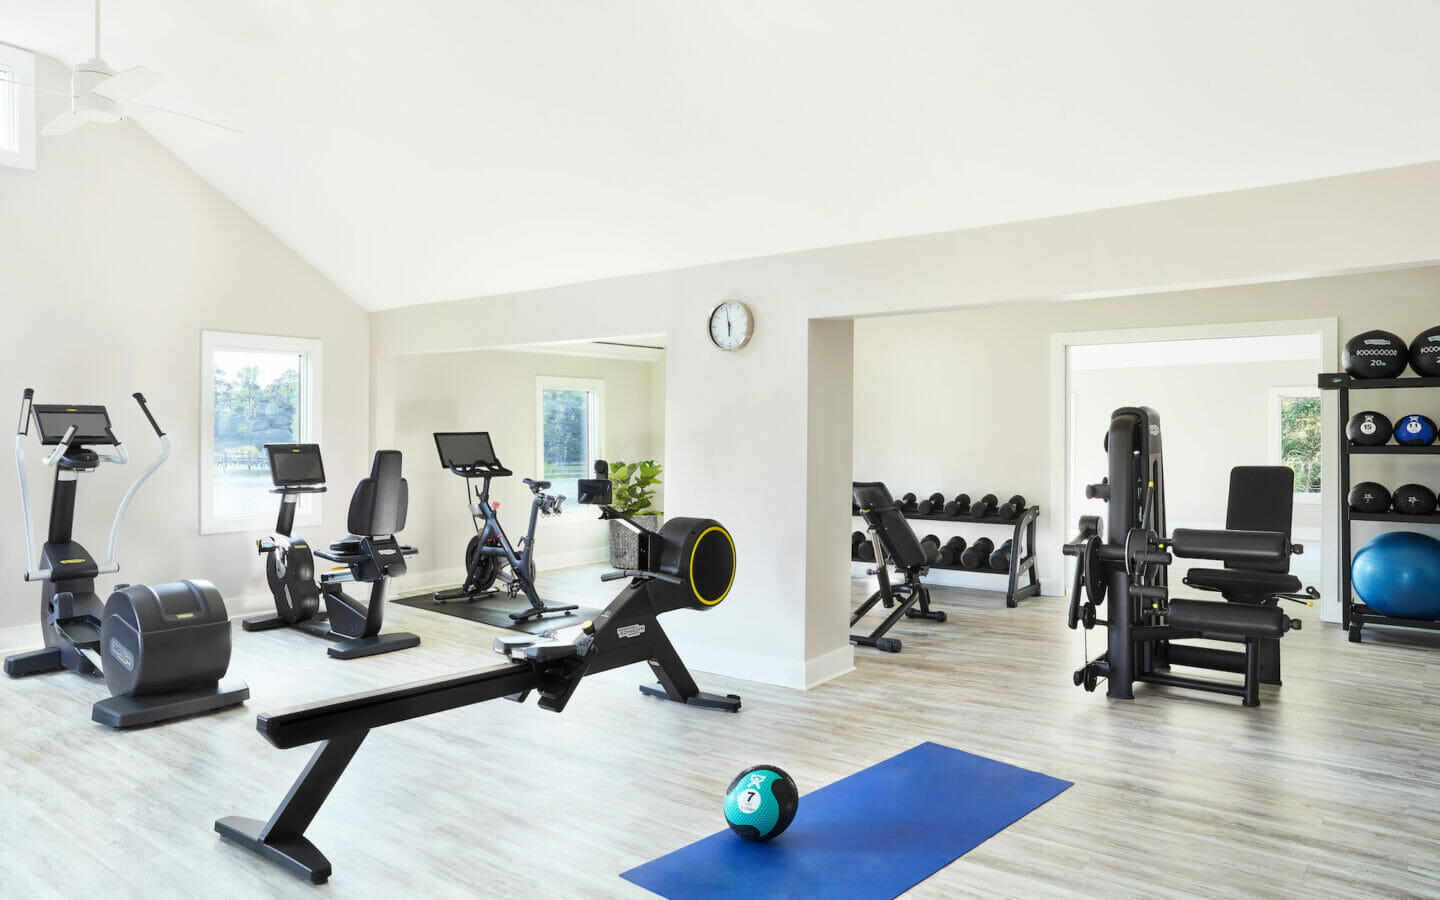 Fitness center at our Chesapeake Bay resort